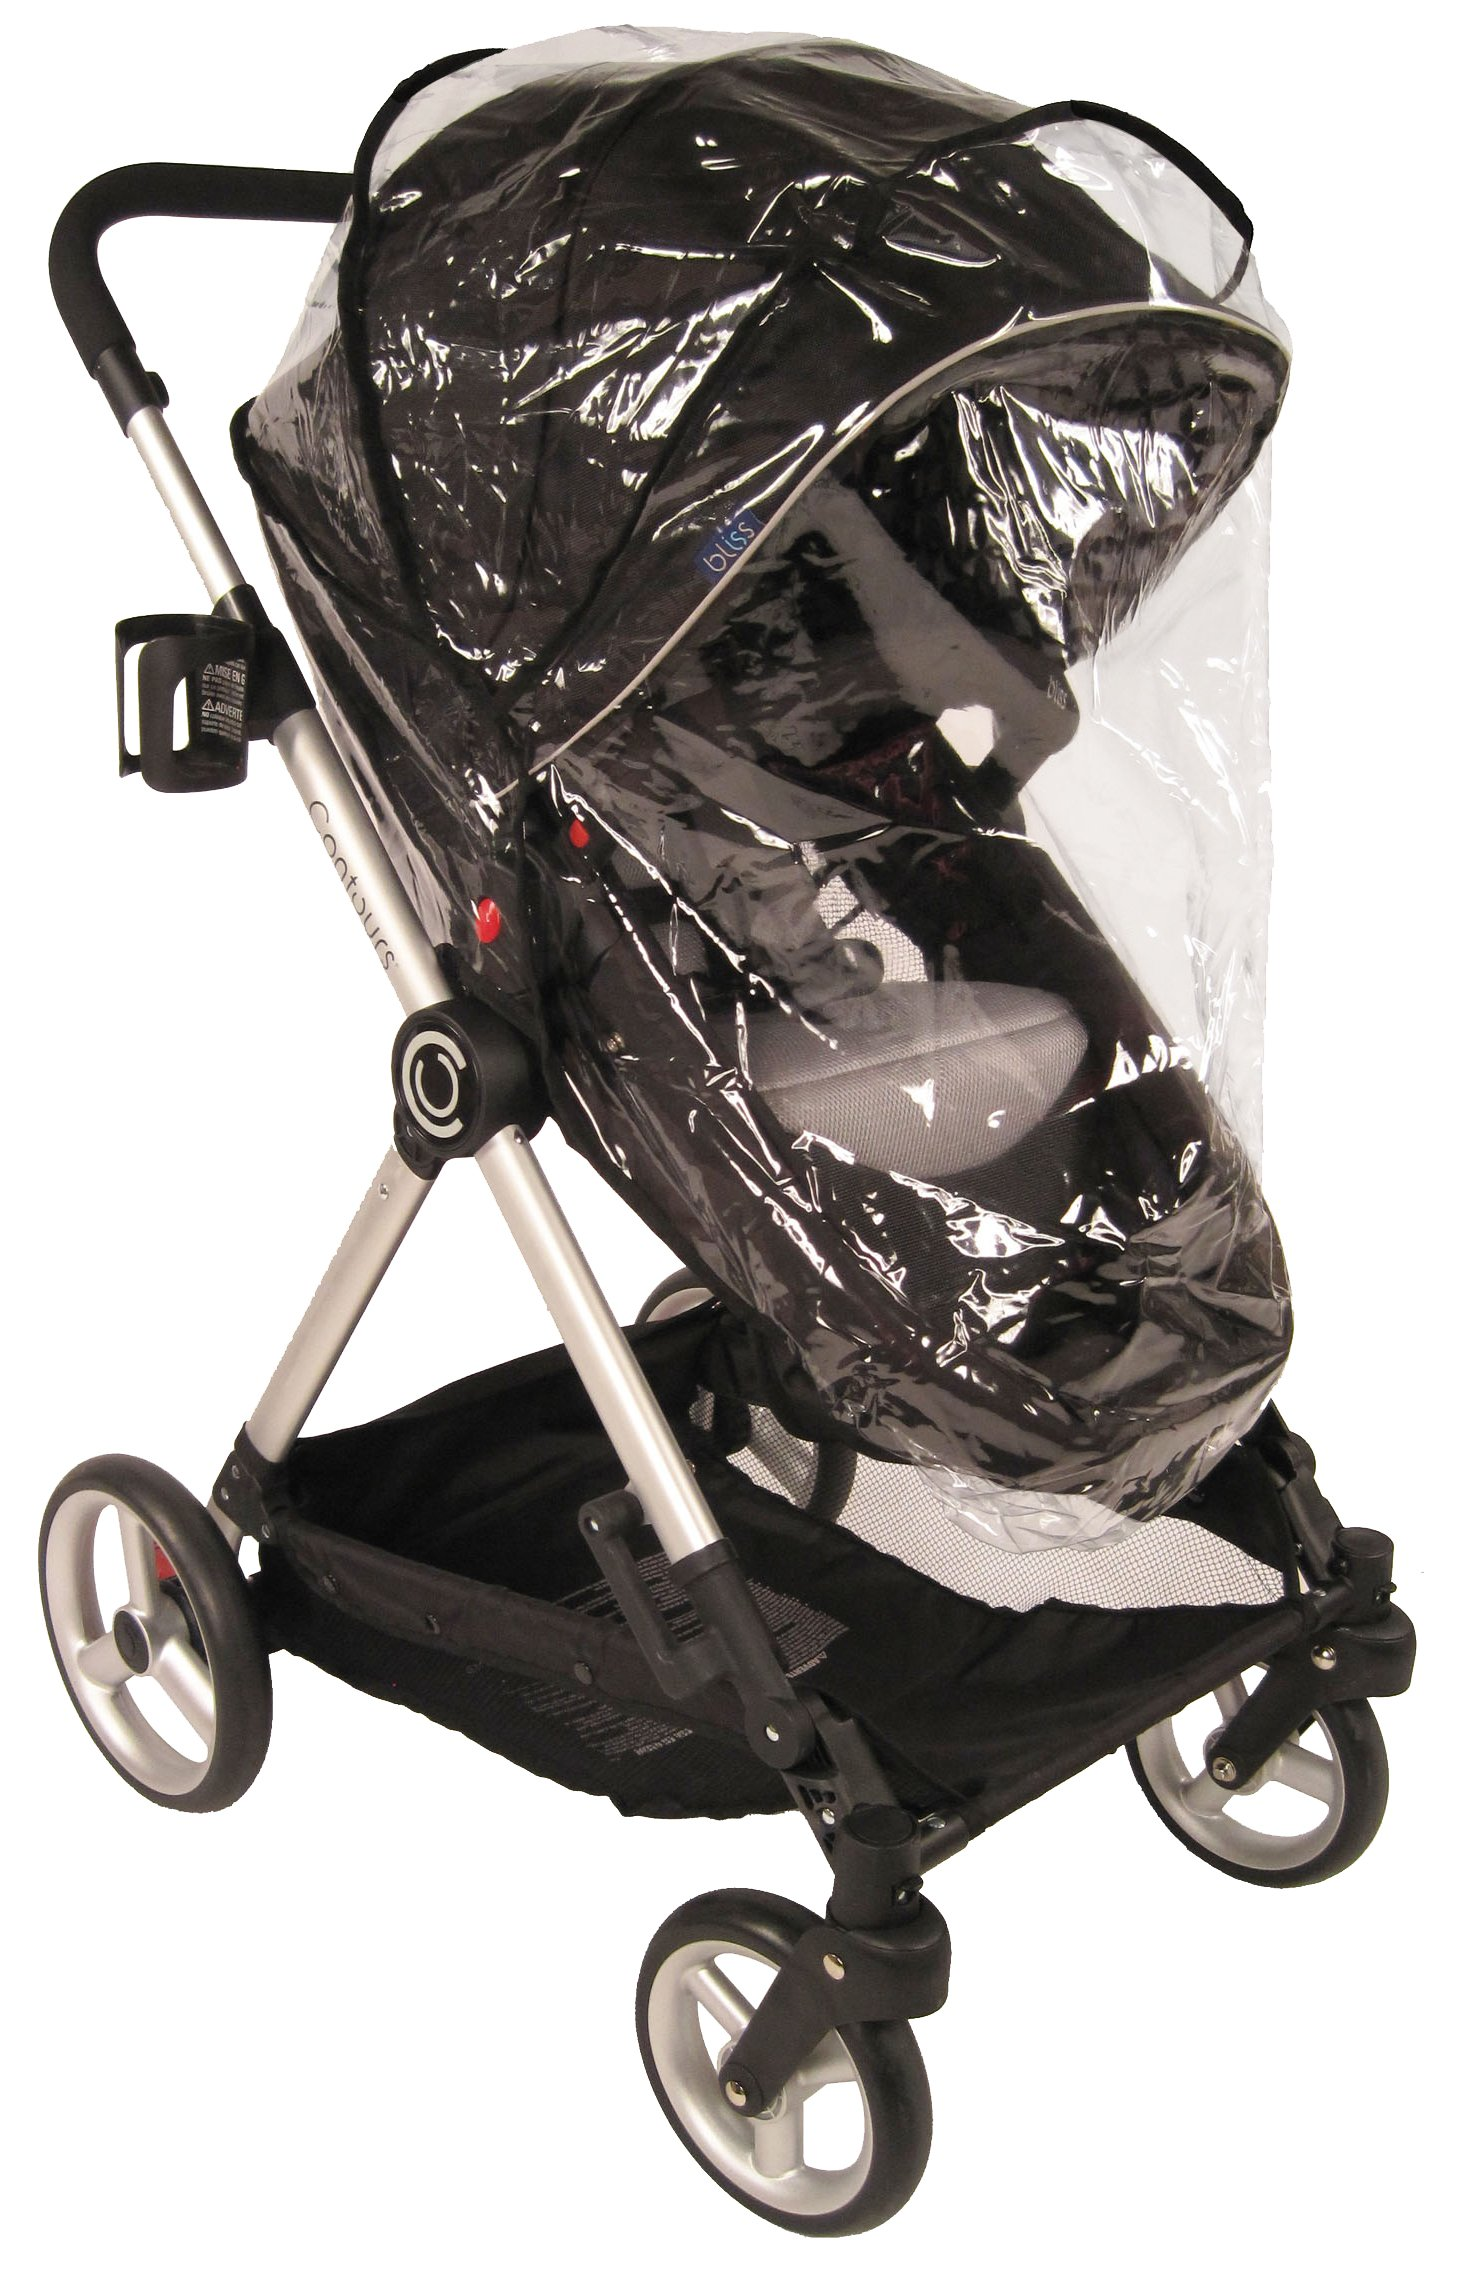 Contours Weather Shield for Contours Single and Double Strollers, Clear -Compatible with Contours Bliss, Options Elite Tandem, Options LT Tandem, Options 3-Wheel, Options Strollers, Contours Curve